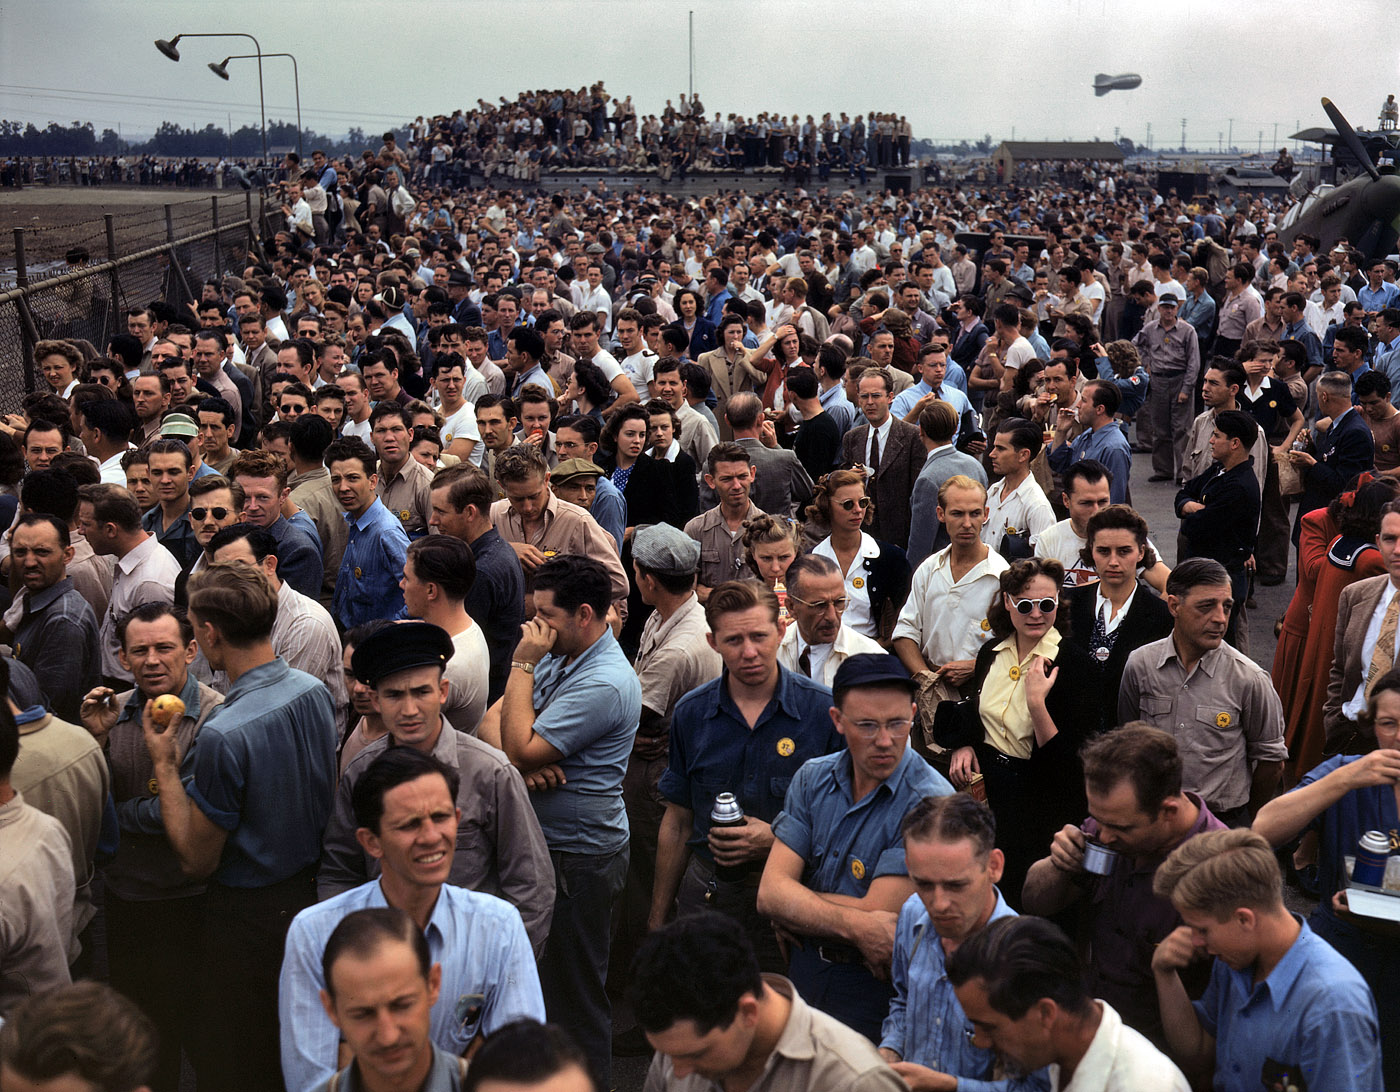 October 1942. Thousands of North American Aviation employees at Inglewood, California, look skyward as the bomber and fighter planes they helped build perform overhead during a lunch period air show. This plant produces the battle-tested B-25 'Billy Mitchell' bomber, used in General Doolittle's raid on Tokyo, and the P-51 'Mustang' fighter plane, which was first brought into prominence by the British raid on Dieppe.